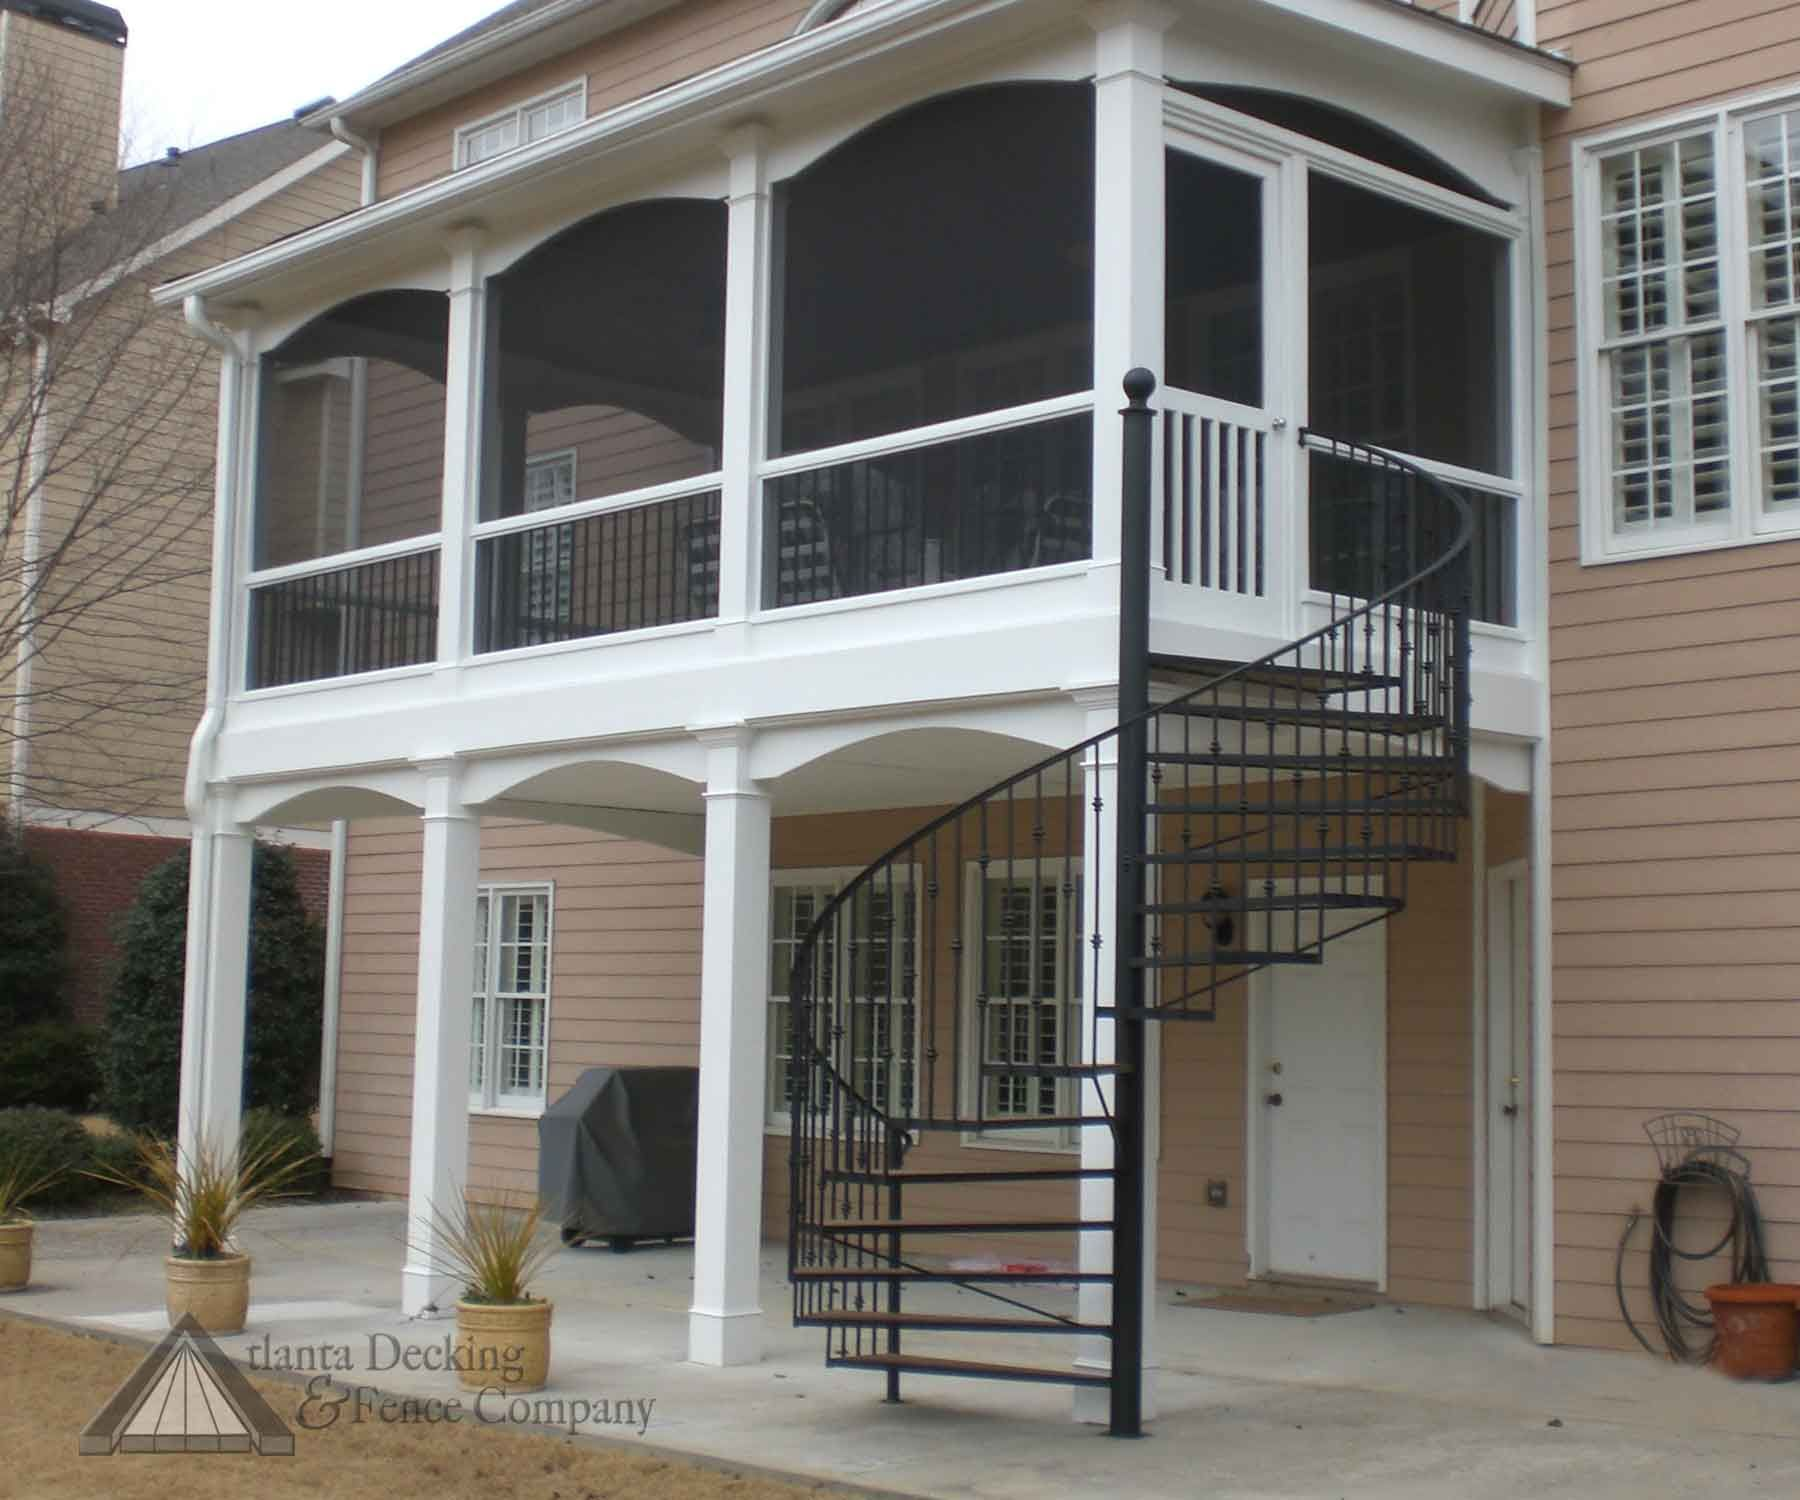 Outdoor Spiral Deck Stairs   Pictures of deck spiral stairs from Atlanta  Decking and Fence Company    Stairs   Pinterest   Spirals  Pictures of and  StairsOutdoor Spiral Deck Stairs   Pictures of deck spiral stairs from  . Outdoor Spiral Stairs Canada. Home Design Ideas